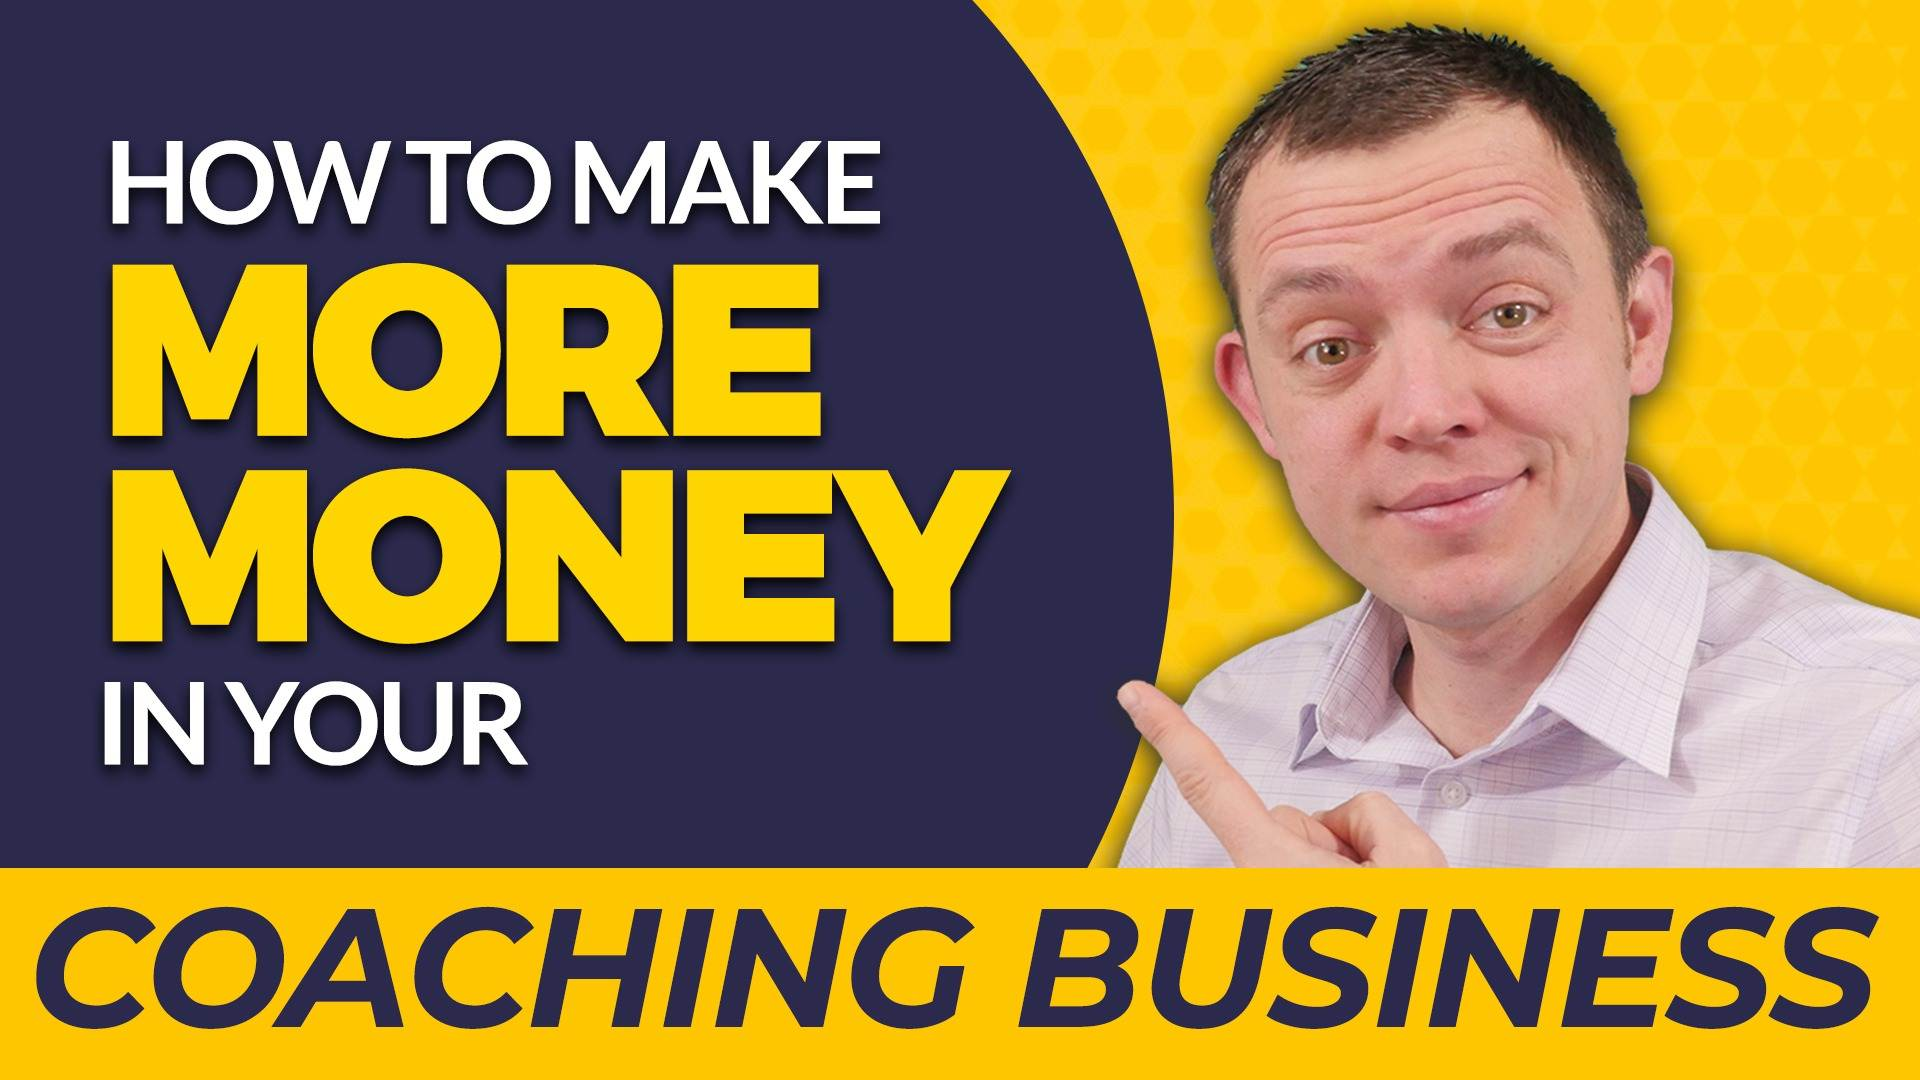 Best Way to Make More Money in Your Coaching Business & Save Time